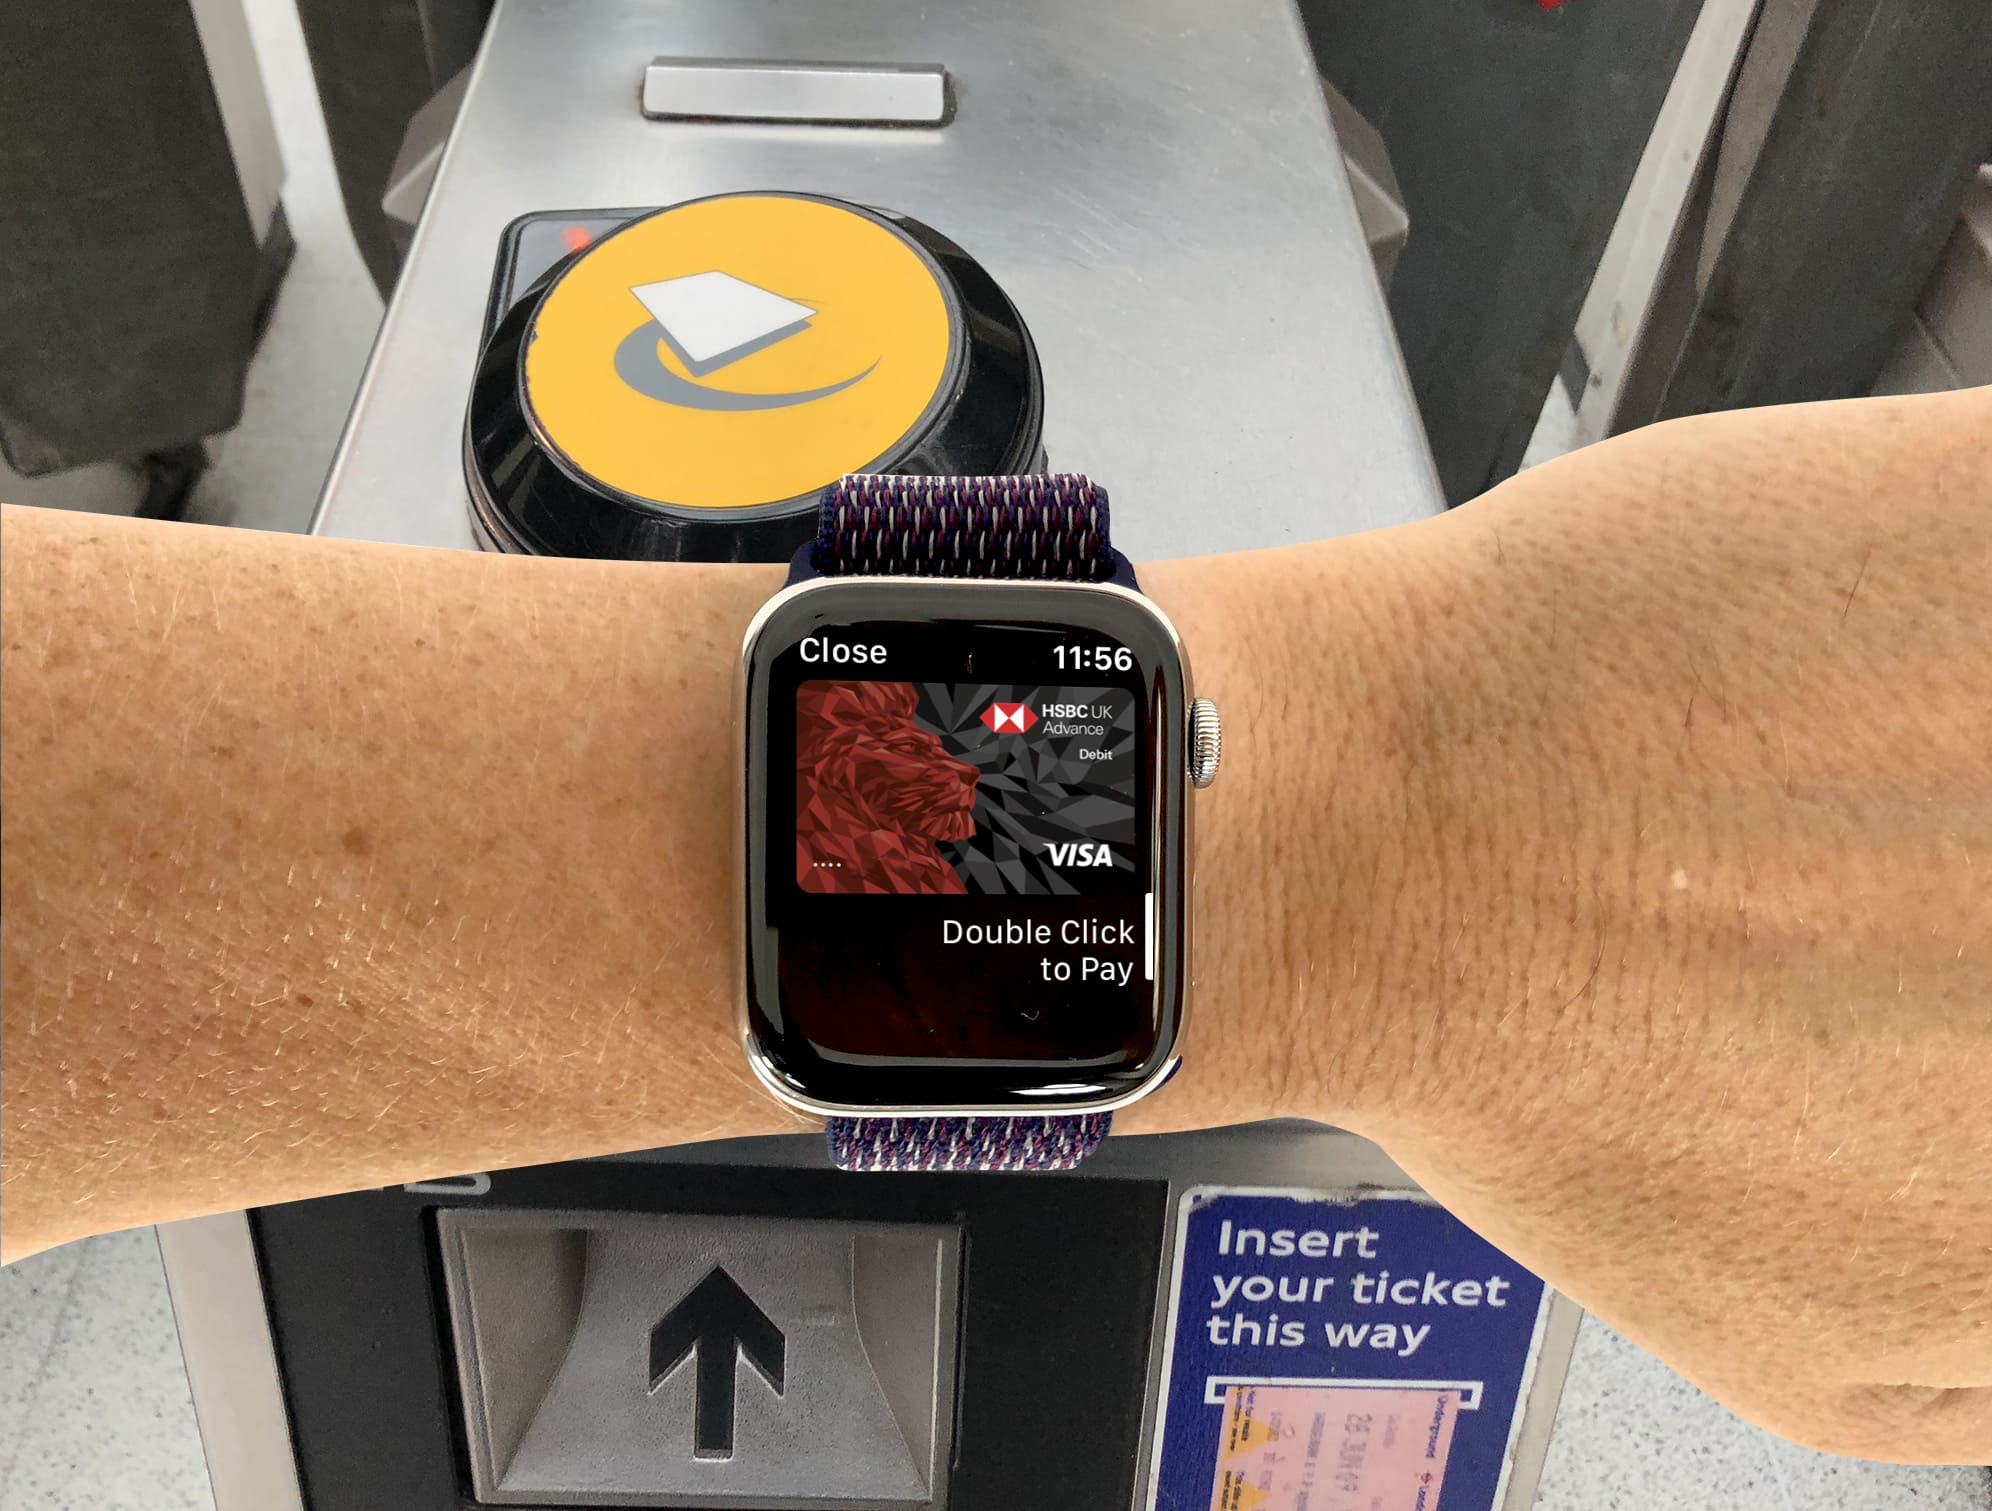 You don't need to trigger Apple Pay to access the London Underground